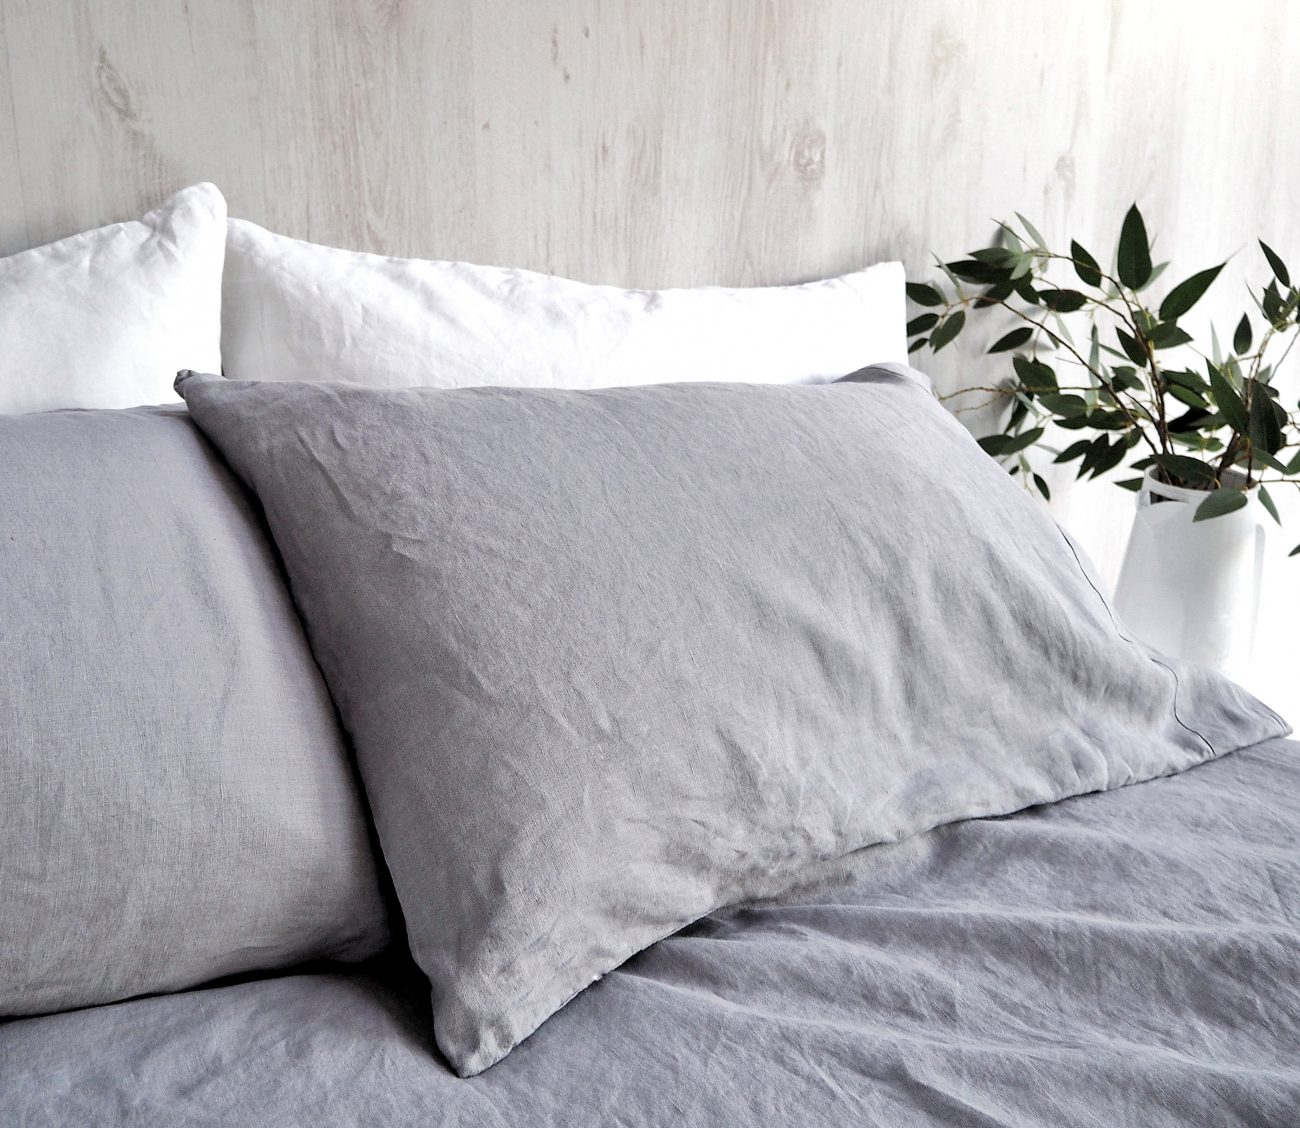 I always say this...If you are on a budget choose wisely when and what you spend your cash on! Bed linen is one of those things because we all need a good night sleep. For the last 5 years I have used solely linen bedding for myself but also for the kids. Wanna know why?